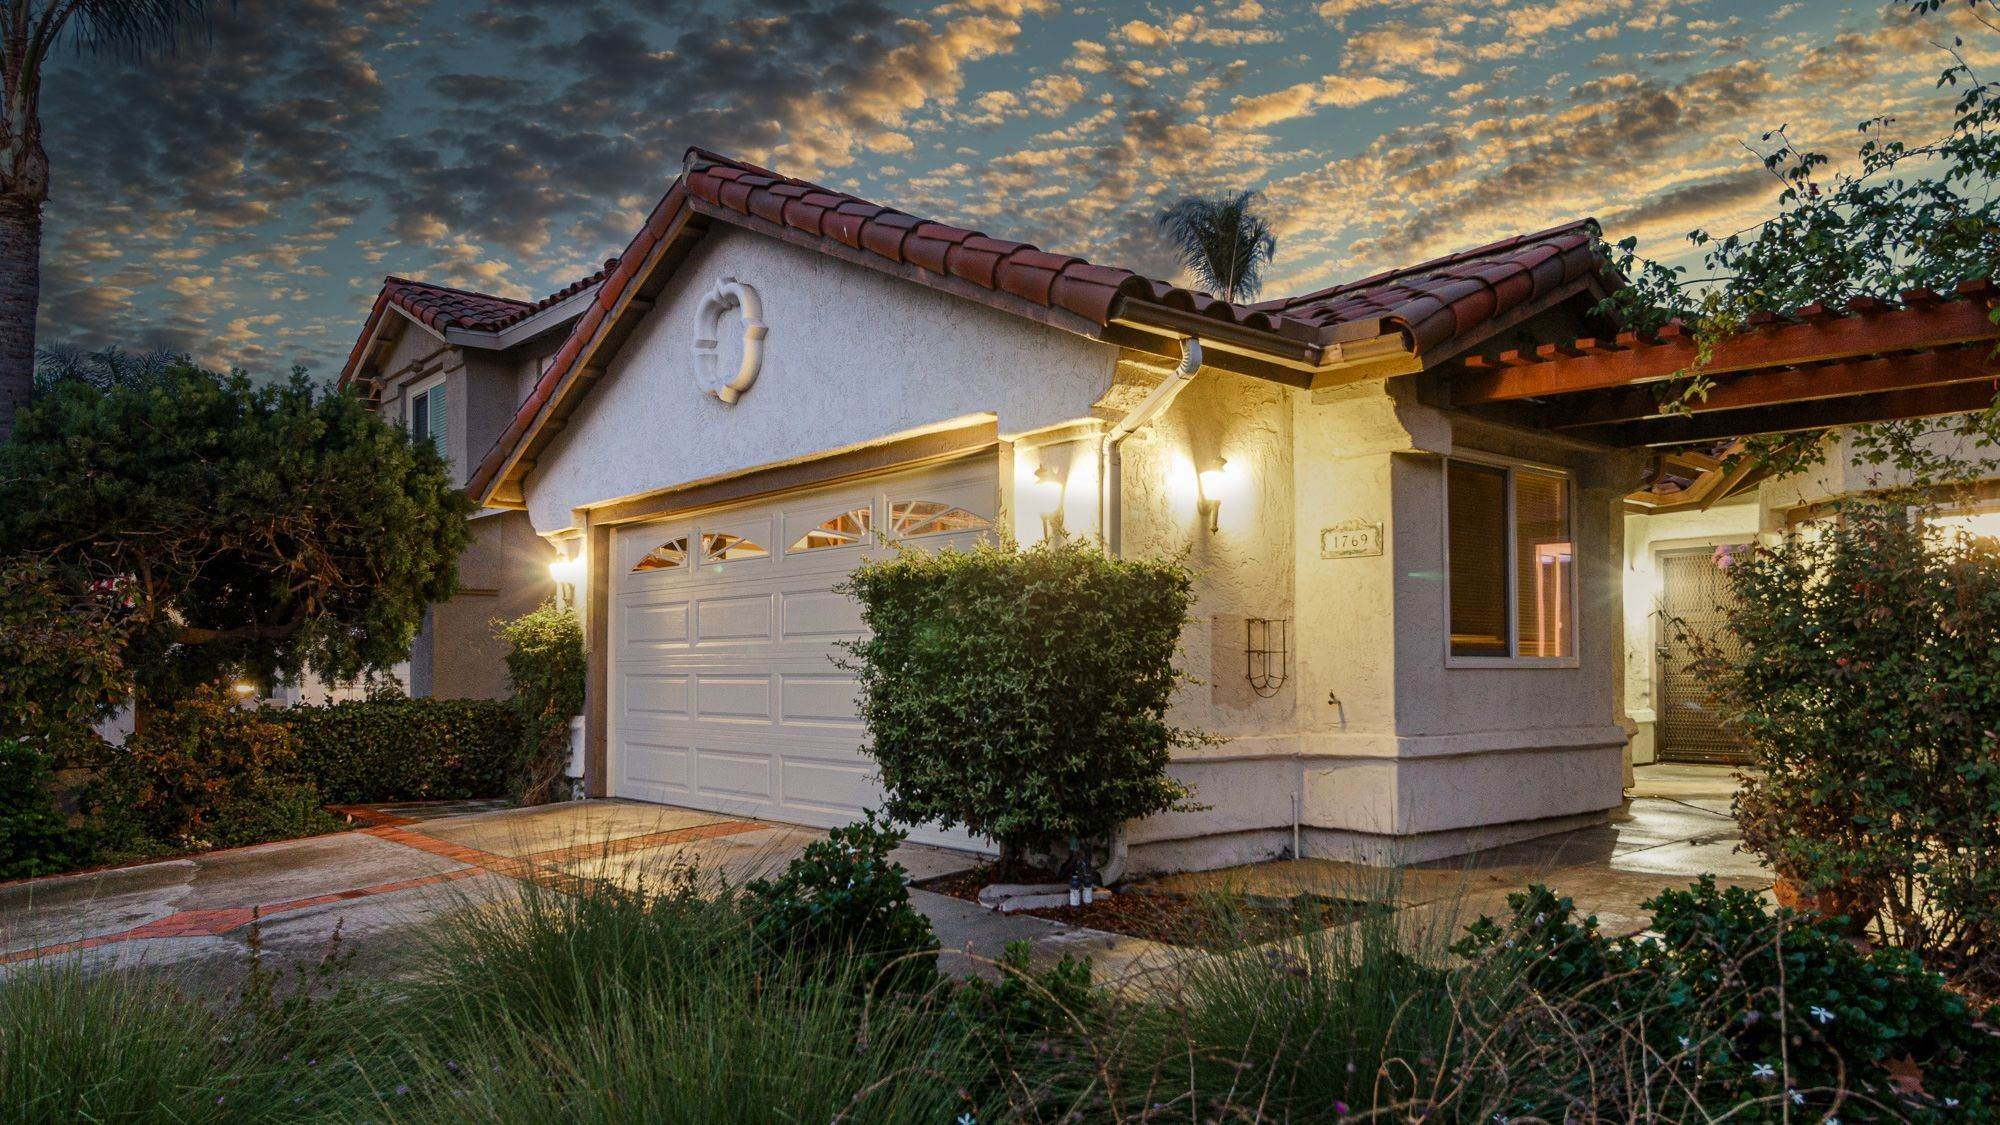 Single Family Homes for Sale at 1769 Via Allena, Oceanside, CA 92056 1769 Via Allena Oceanside, California 92056 United States